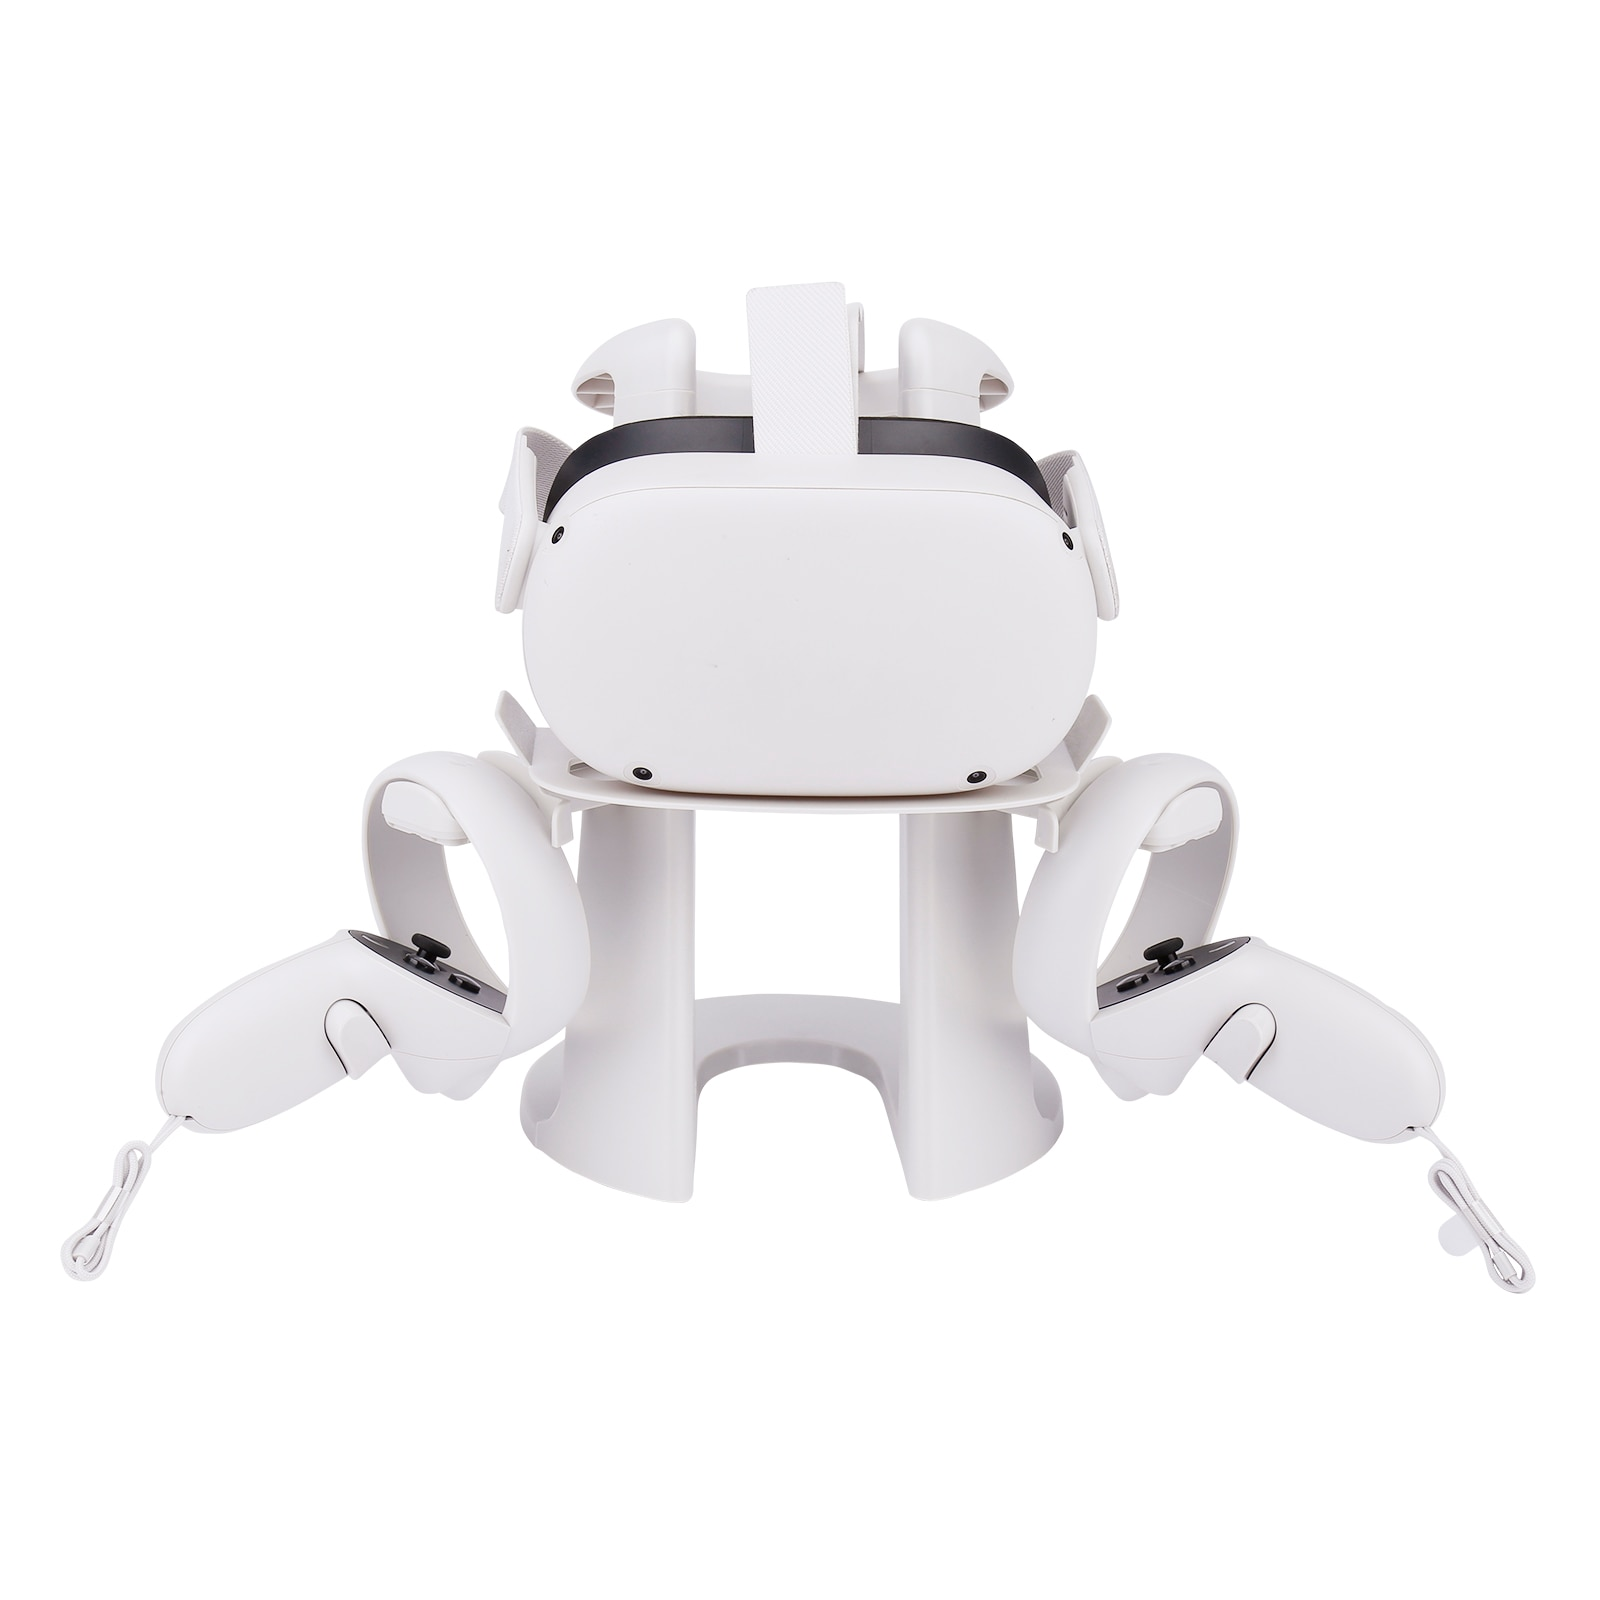 GOMRVR VR Headset and Touch Controllers Display Stand, Helmet & Handle Holder Mount Station for Ocul